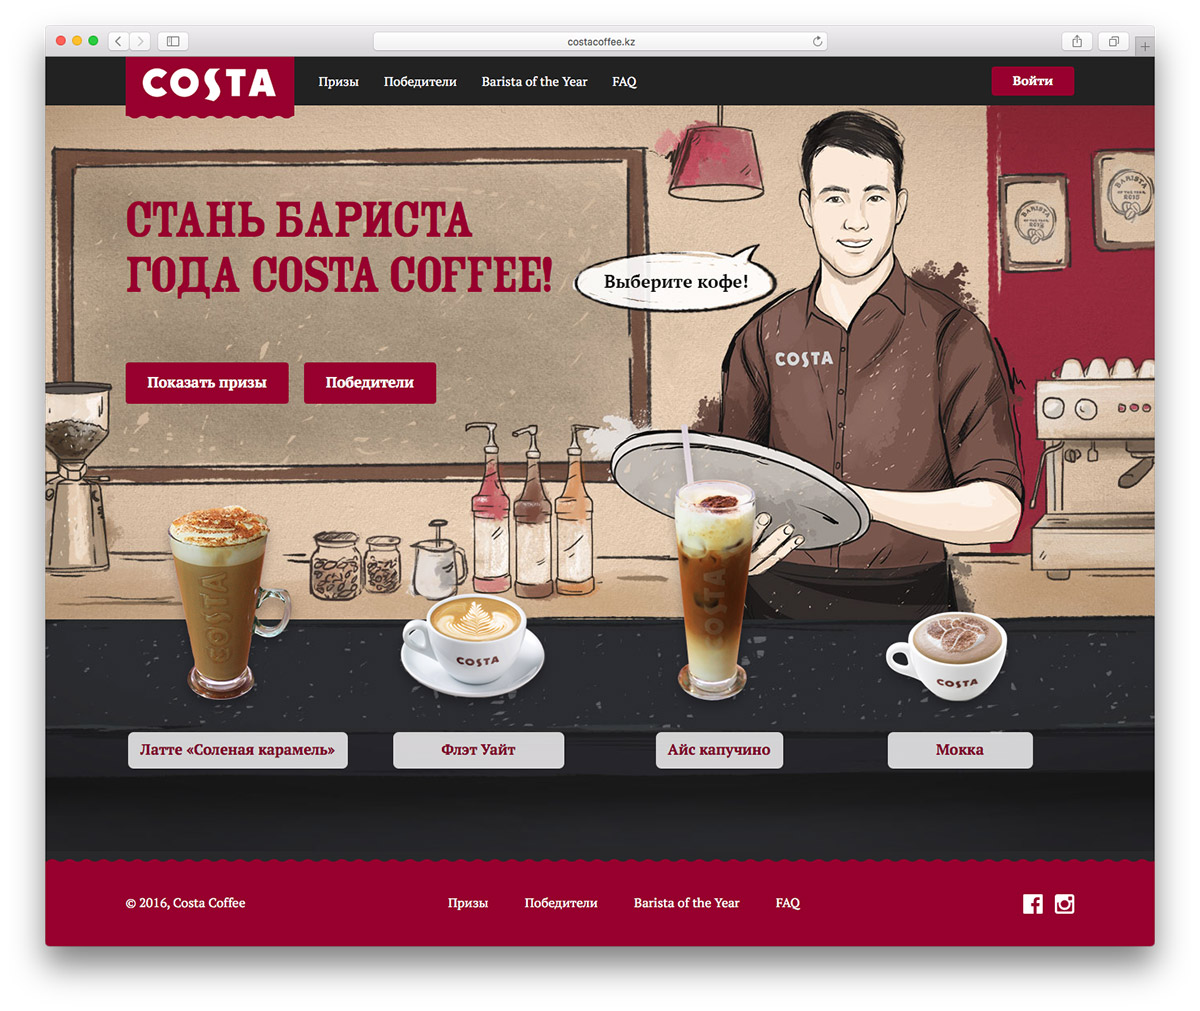 The main page invites to pass the test. To become a participant it is necessary to choose a coffee drink